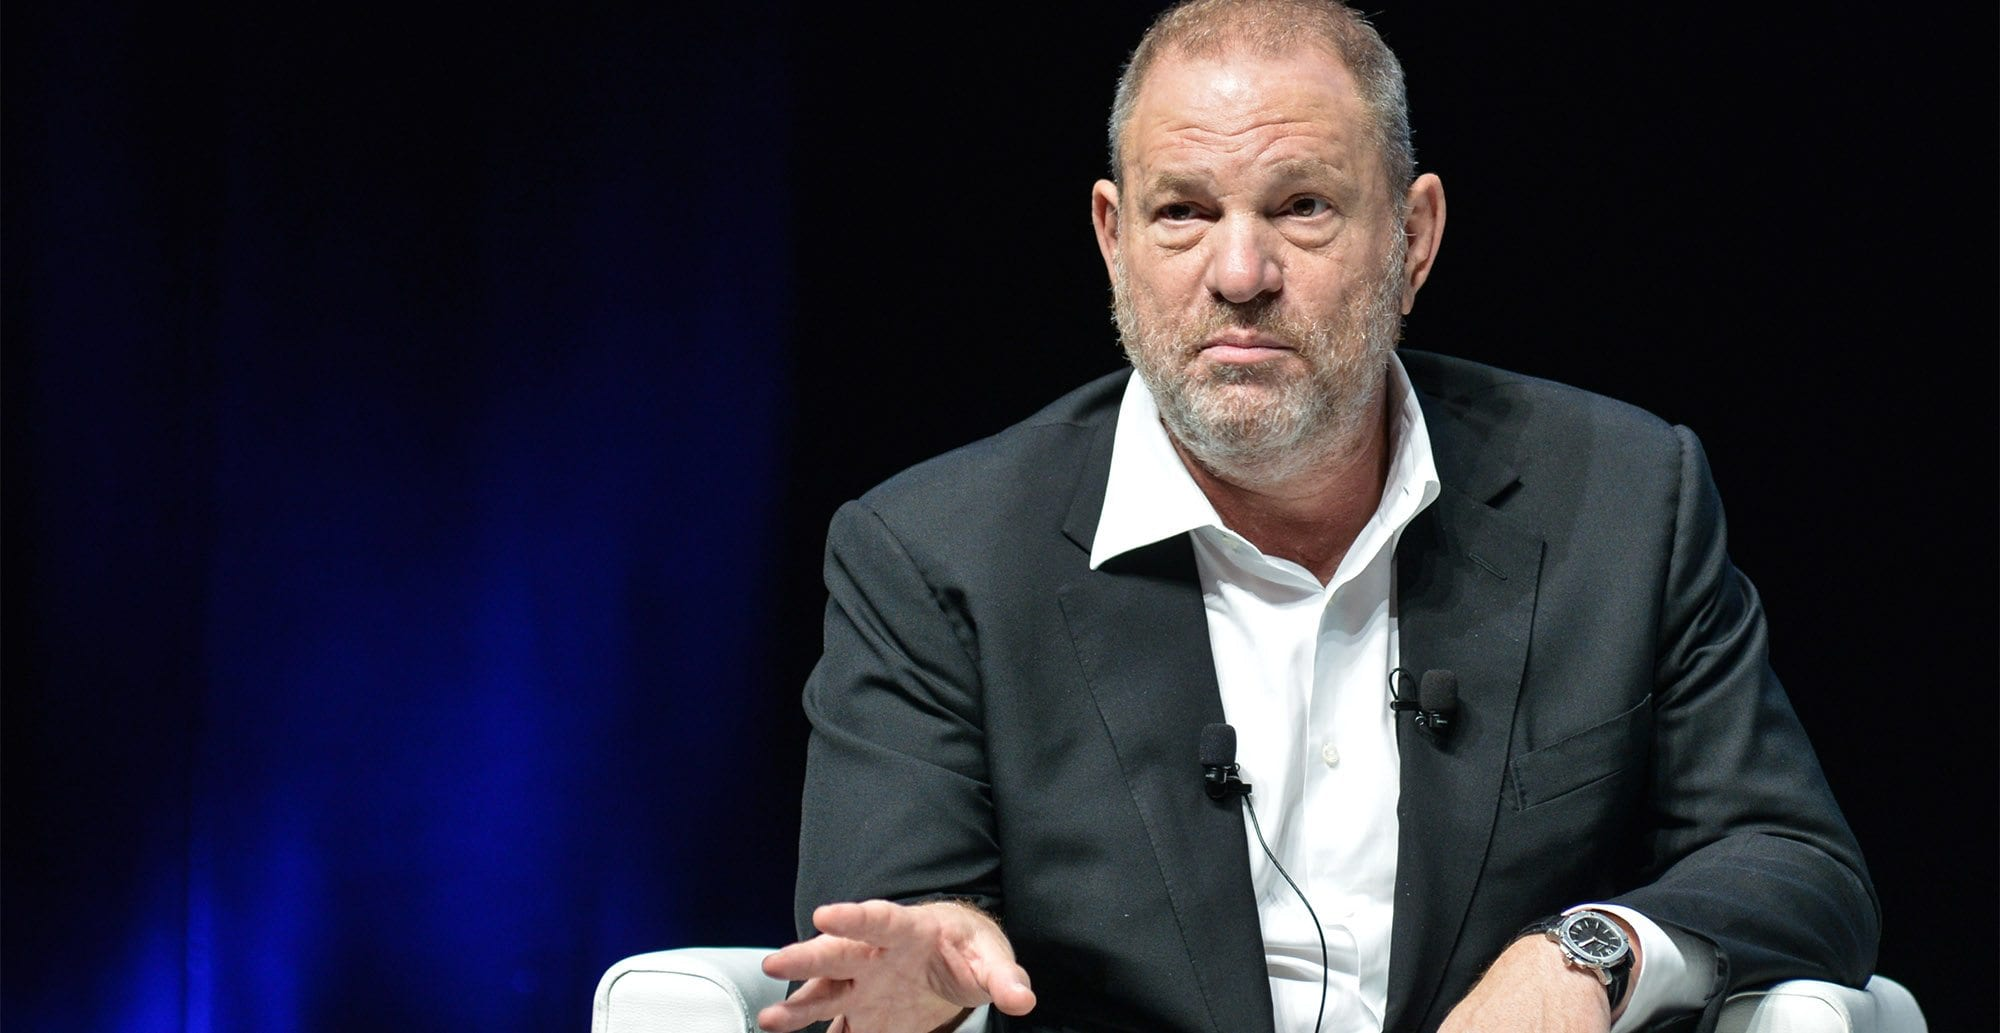 Grabbing a single mop to clean up the proverbial oil spill of sexual assault and harassment accusations that have spoiled the Hollywood waters over the past year, SAG-AFTRA have proposed a ban on hotel room auditions to tackle the issue.